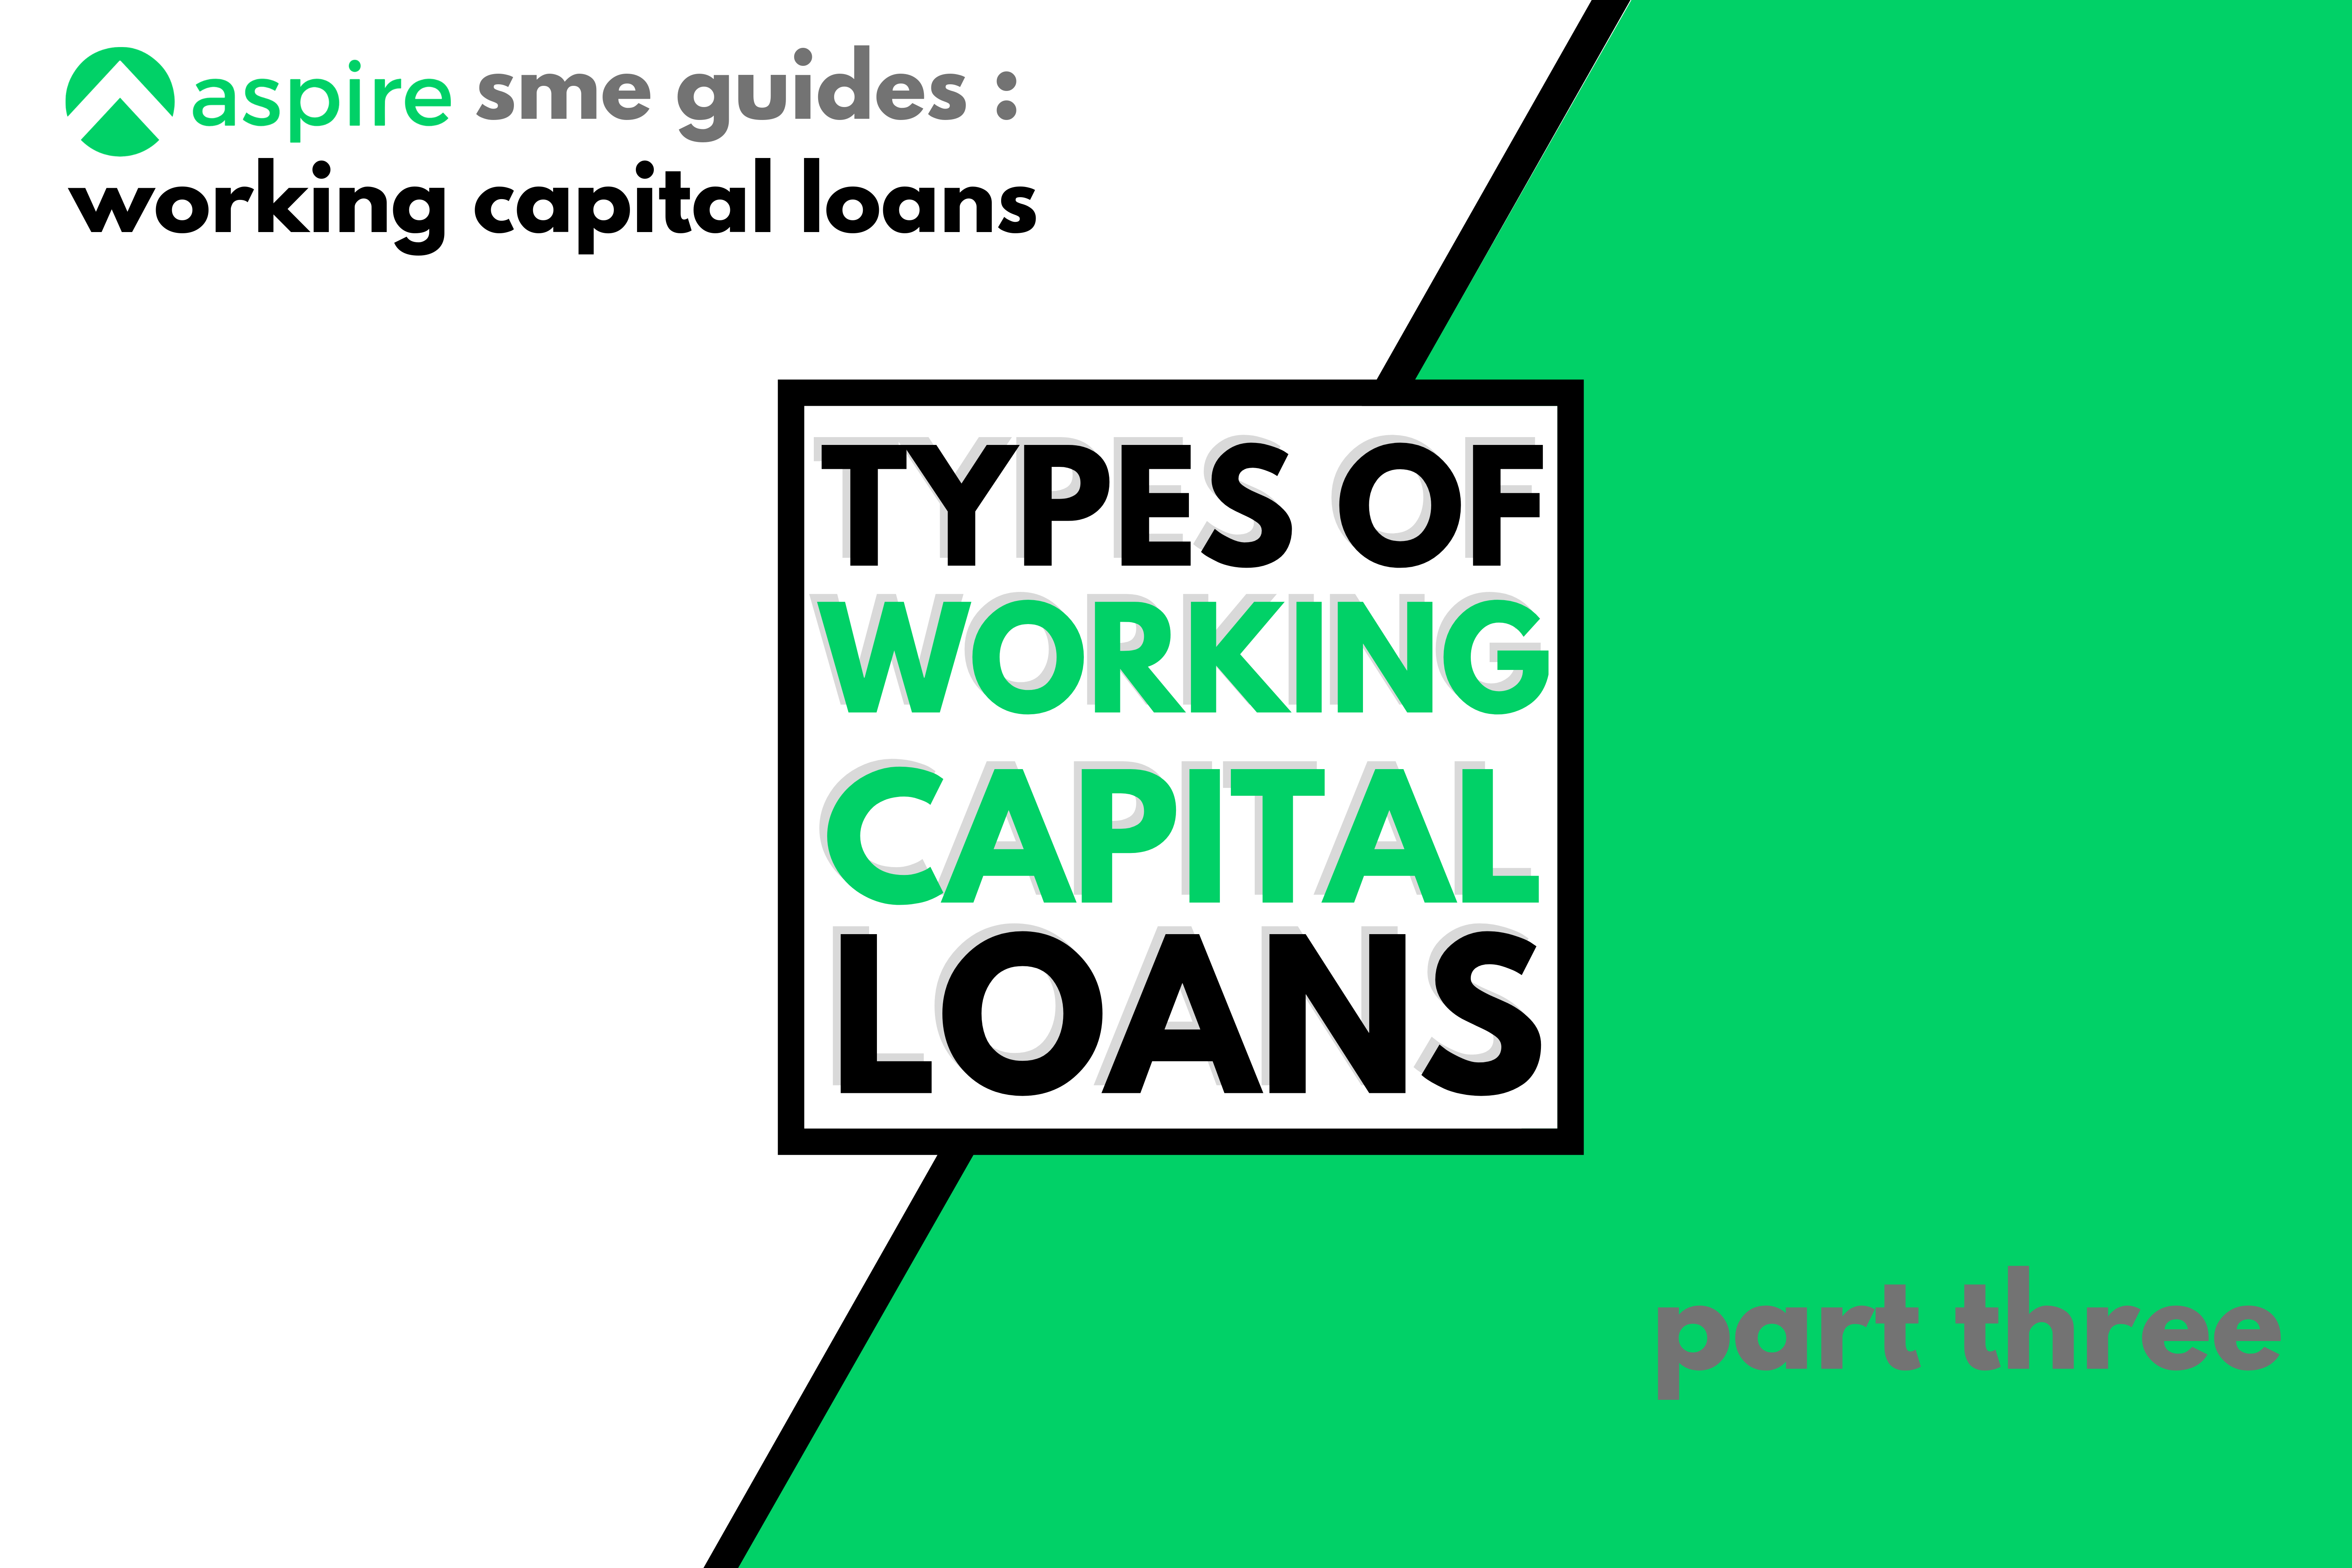 3. Types of Working Capital Loans   SME Guides